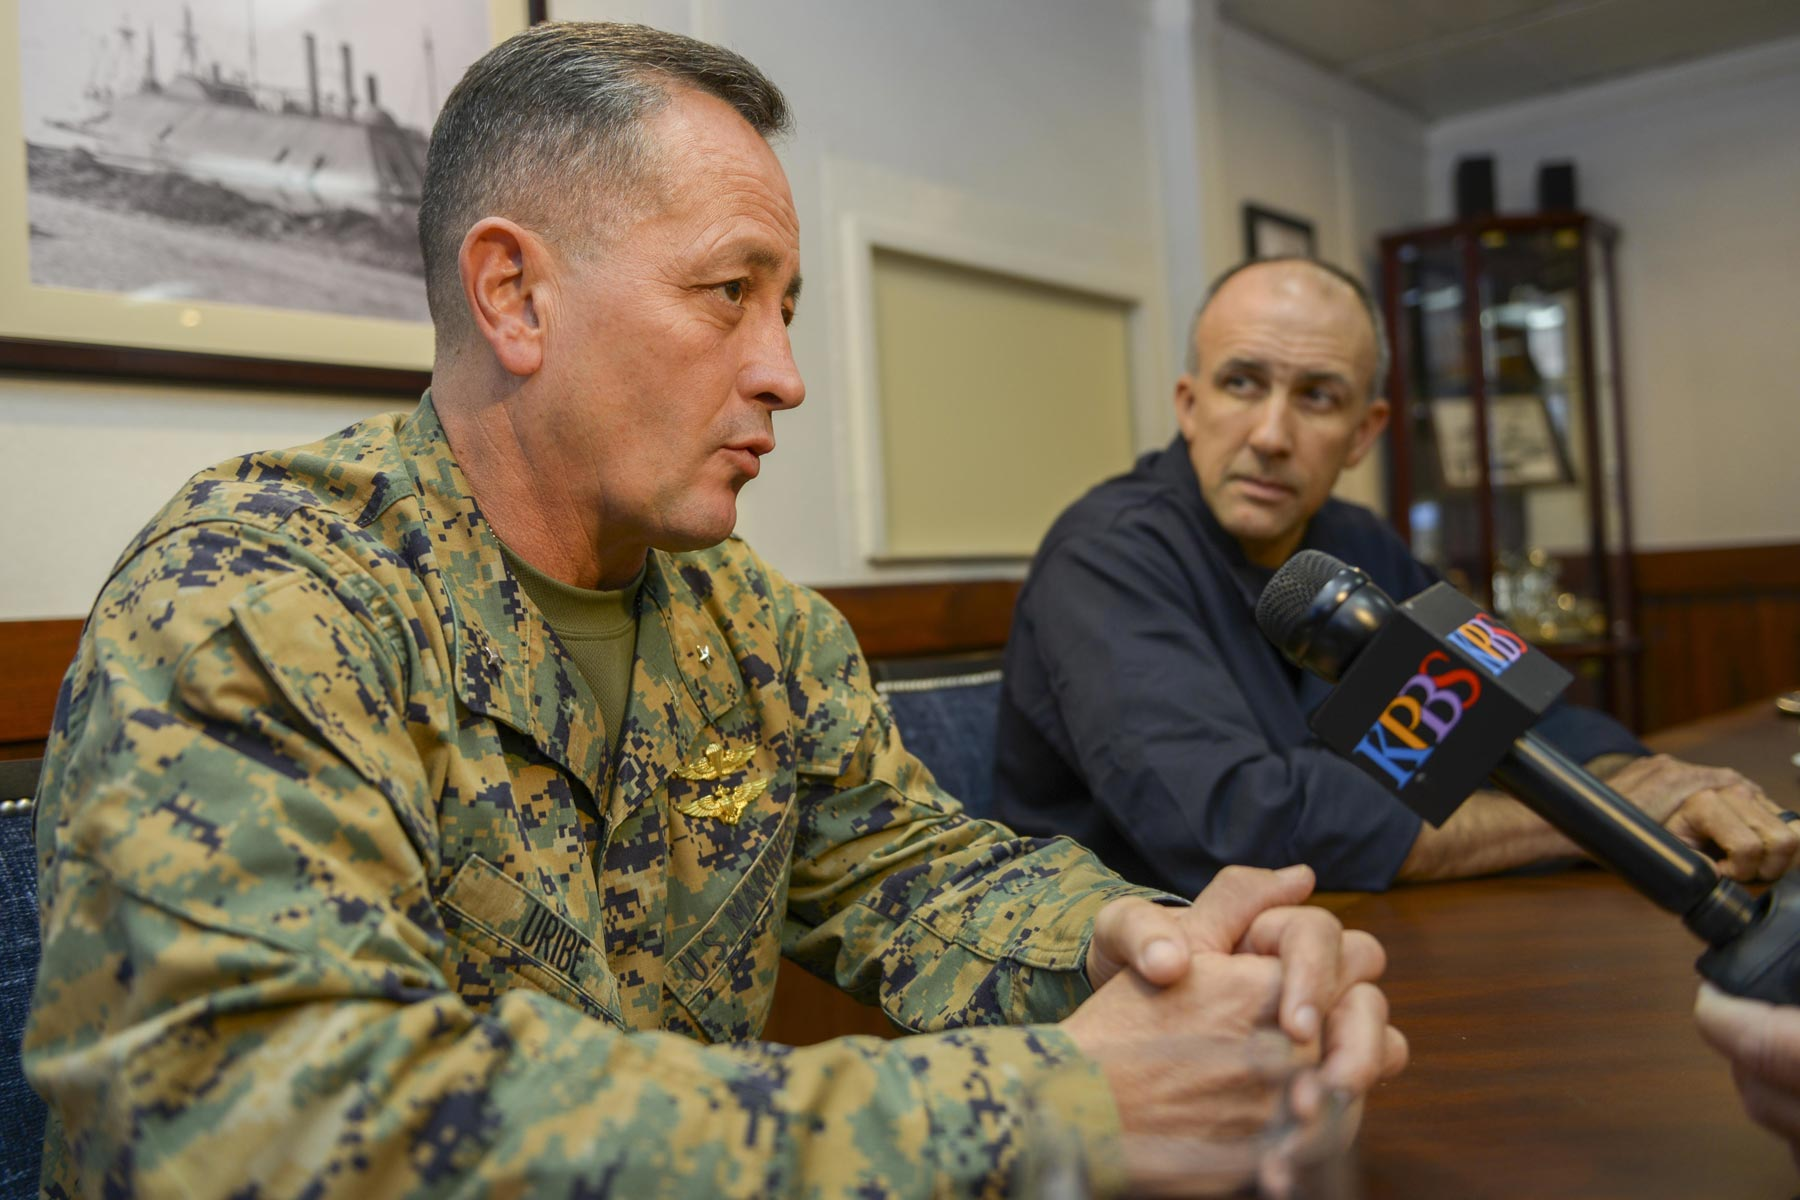 Former Marine Corps Ig Used Aide For Menial Jobs Accepted Gifts